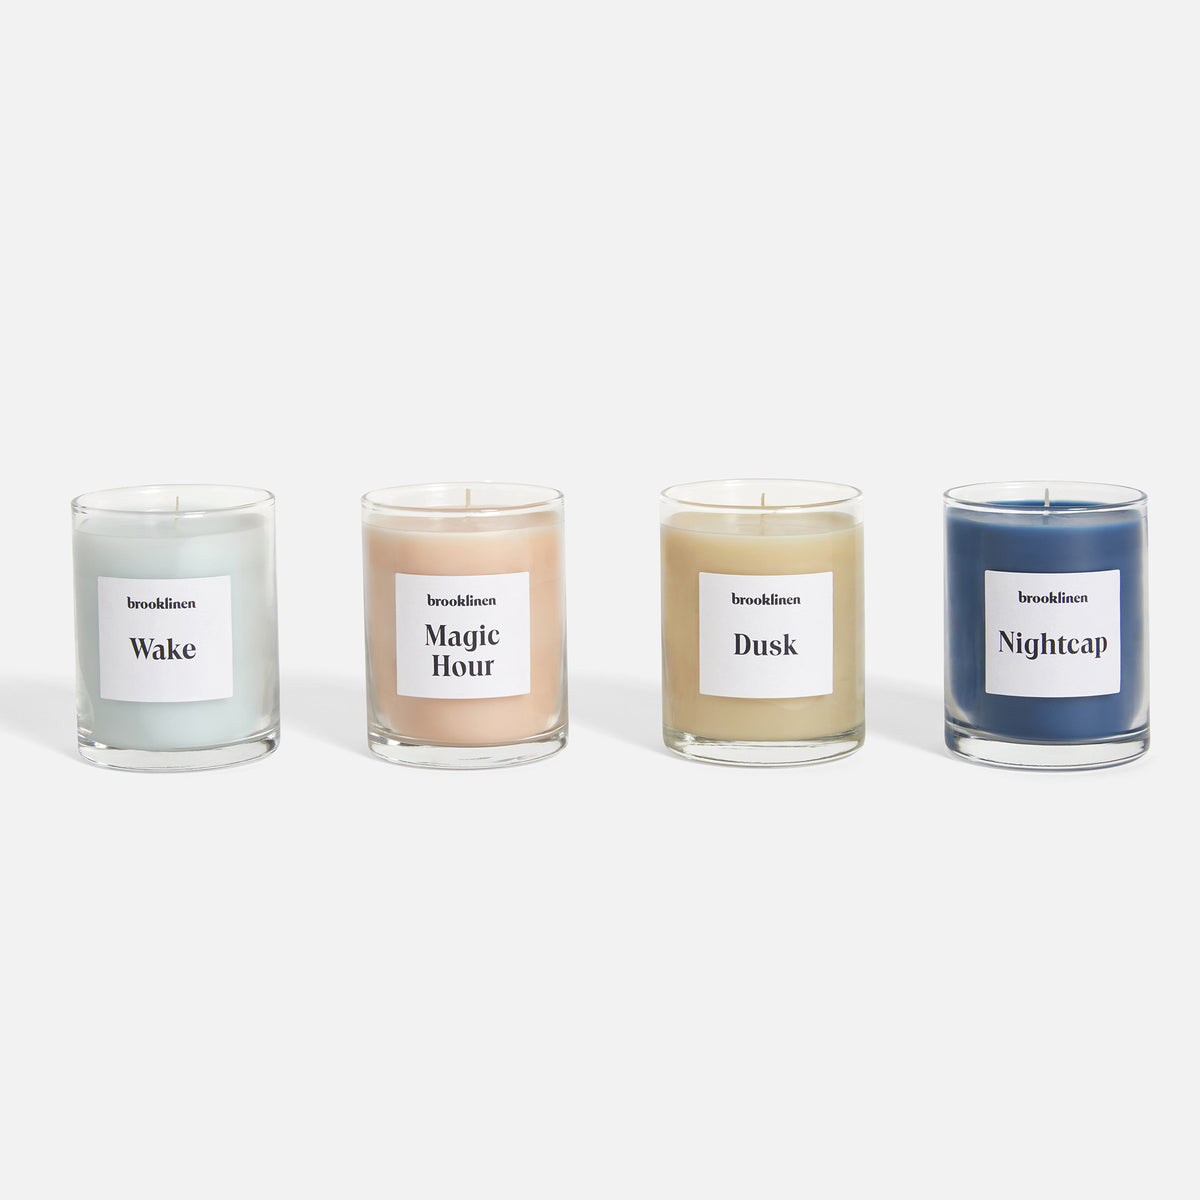 brooklinen candles, mini candles, apartment decor, affordable apartment decor, nyc apartment